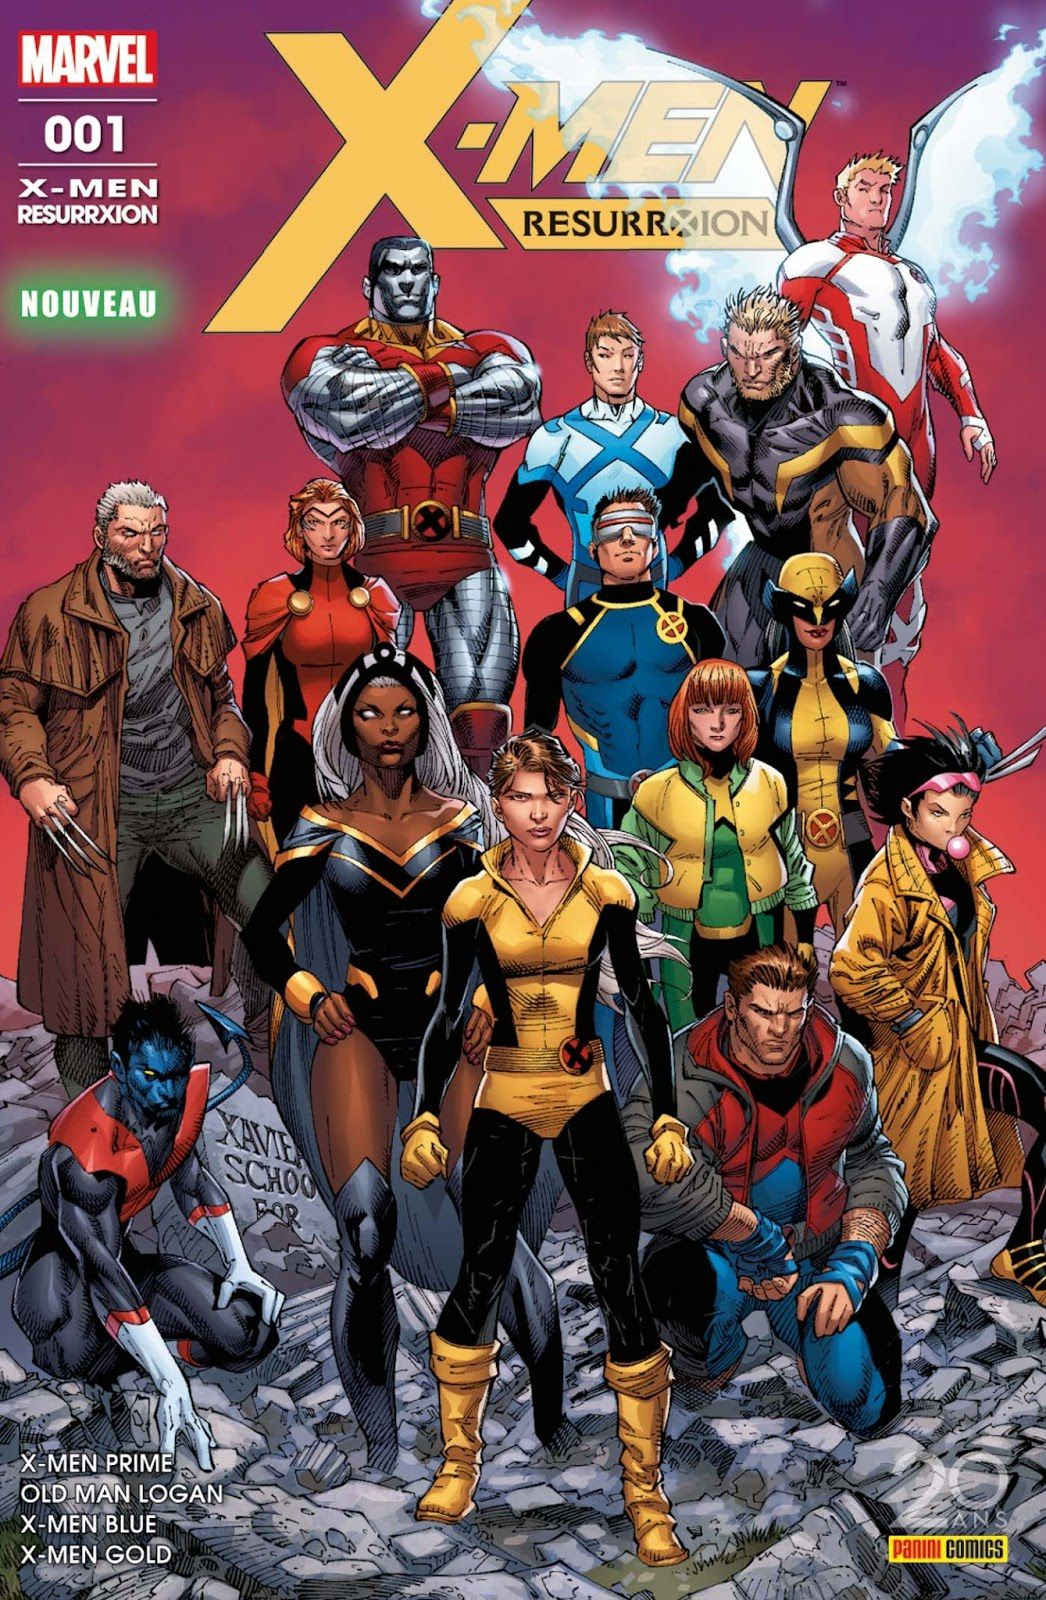 X Men Resurrxtion Retour Aux Sources De L Heroisme Le Blog De